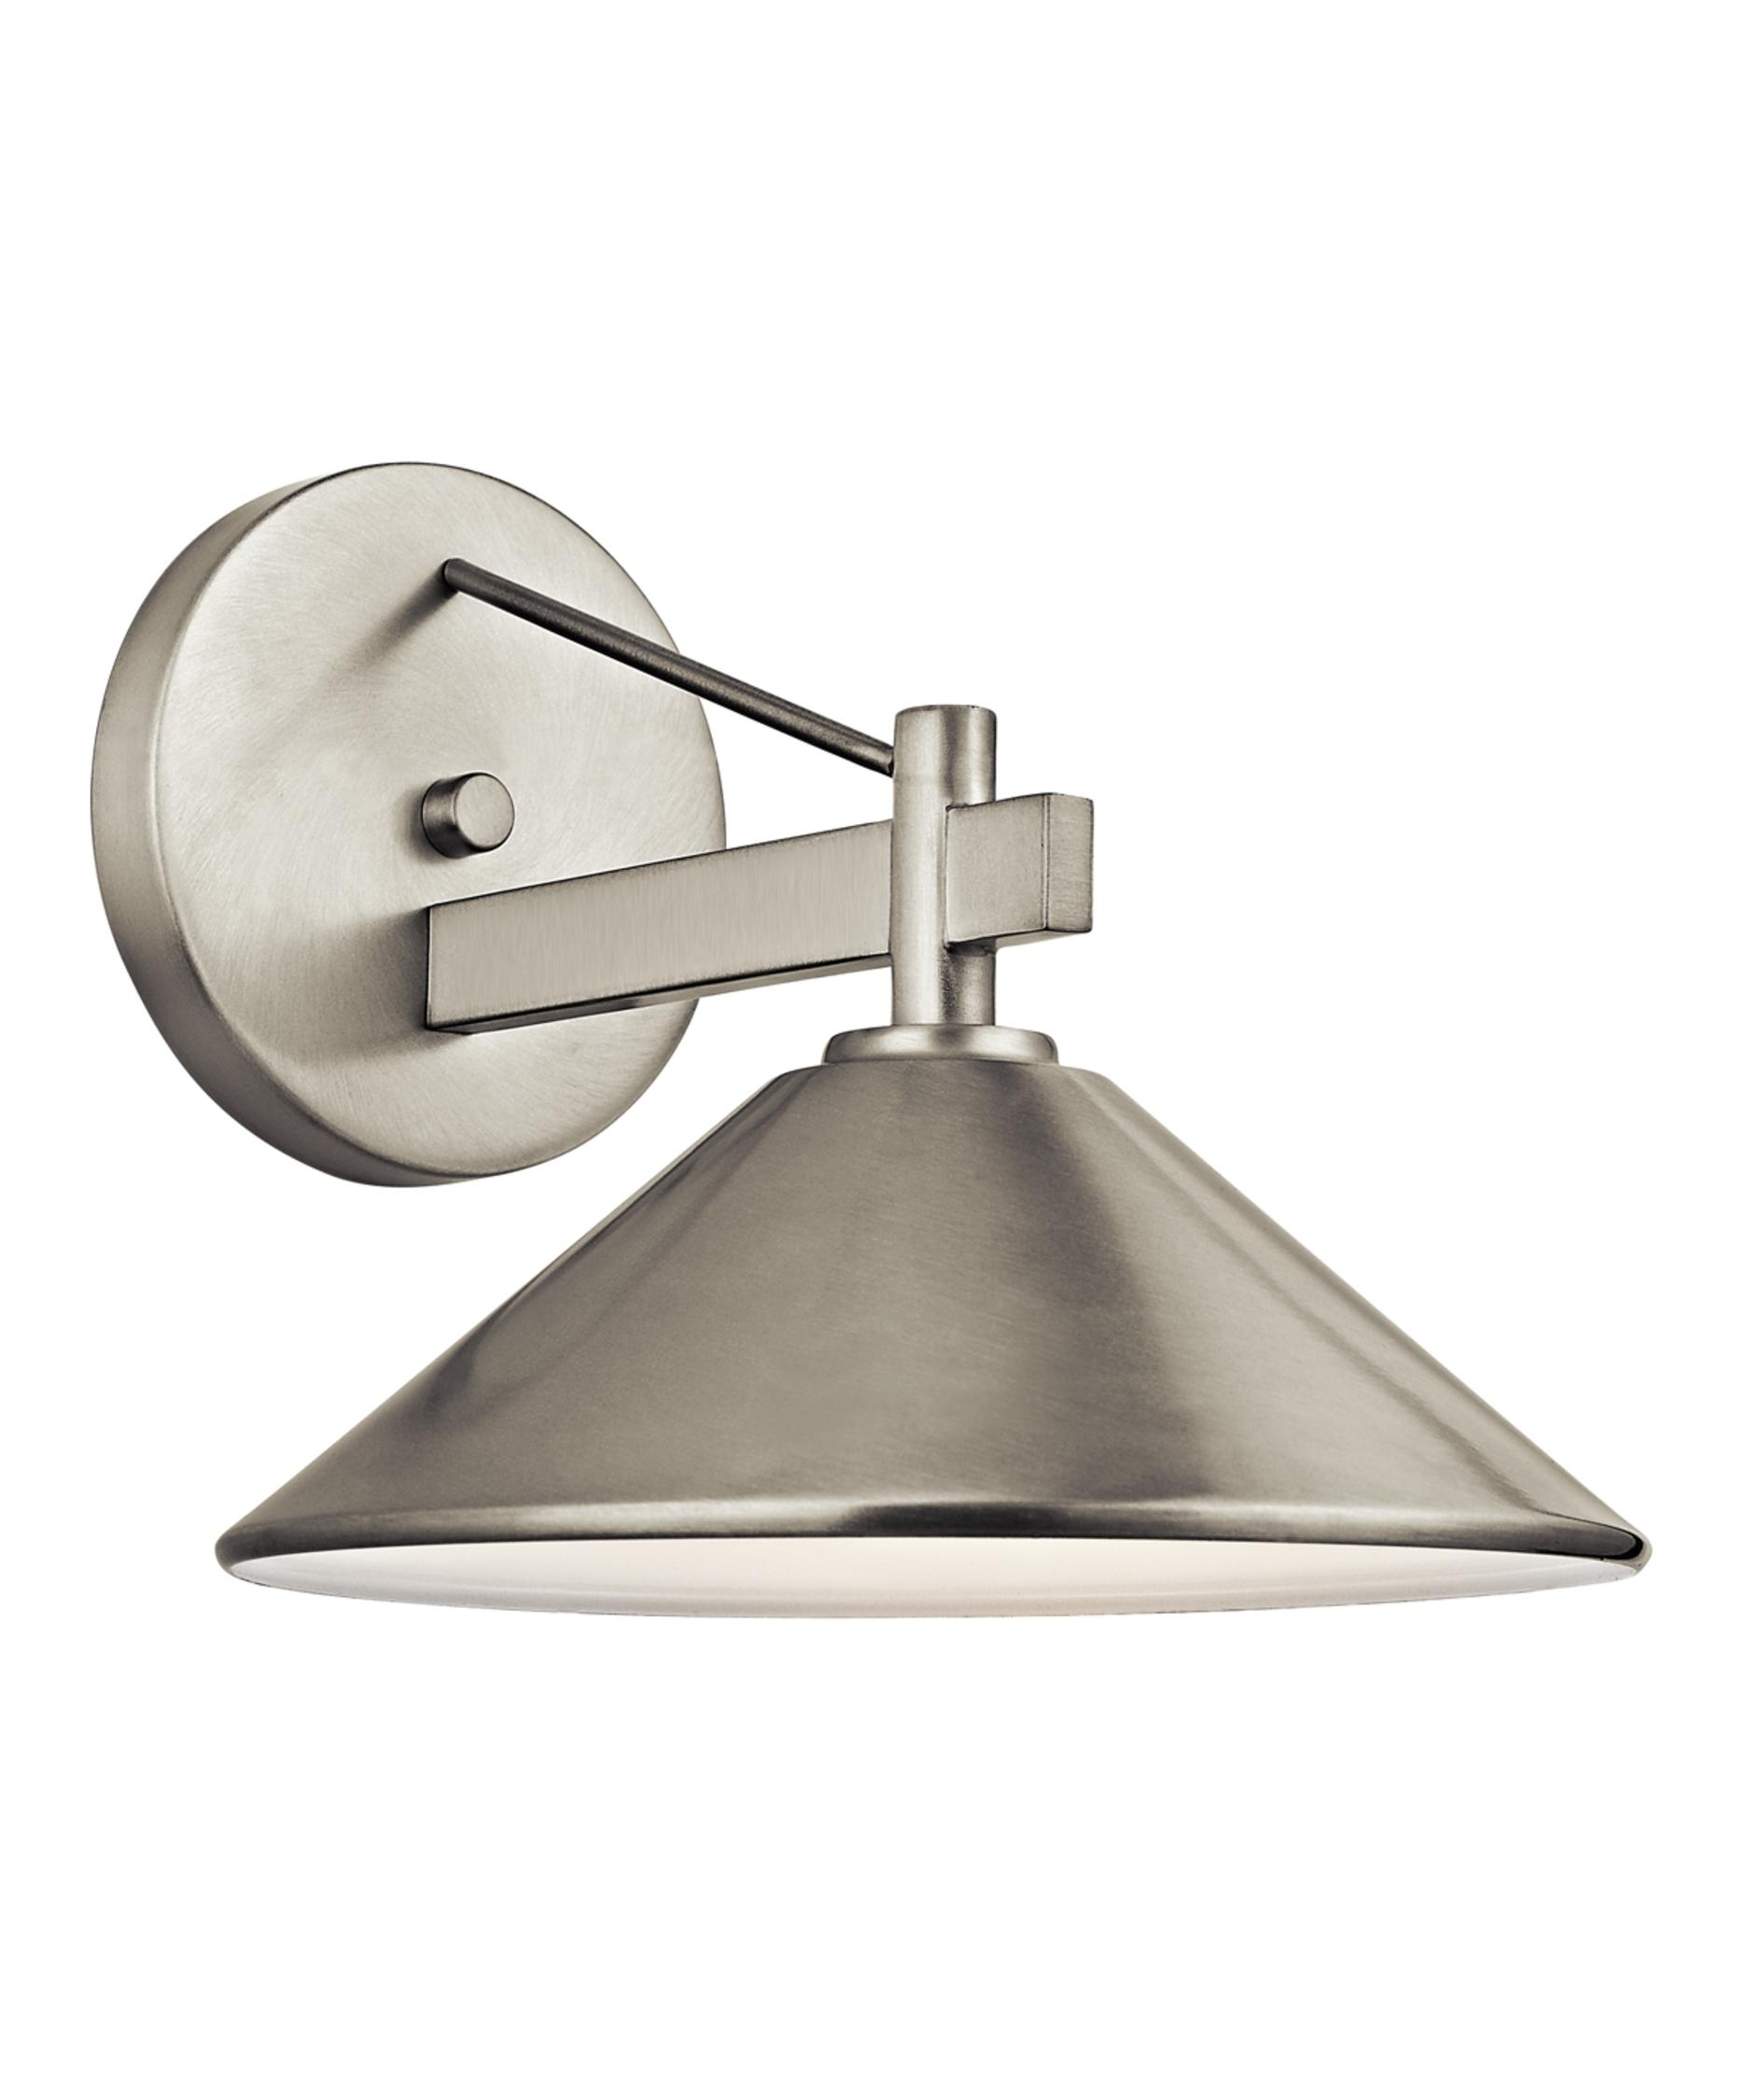 Kichler 49060 Ripley 10 Inch Wide 1 Light Outdoor Wall Light Regarding Brushed Nickel Outdoor Wall Lighting (#4 of 15)